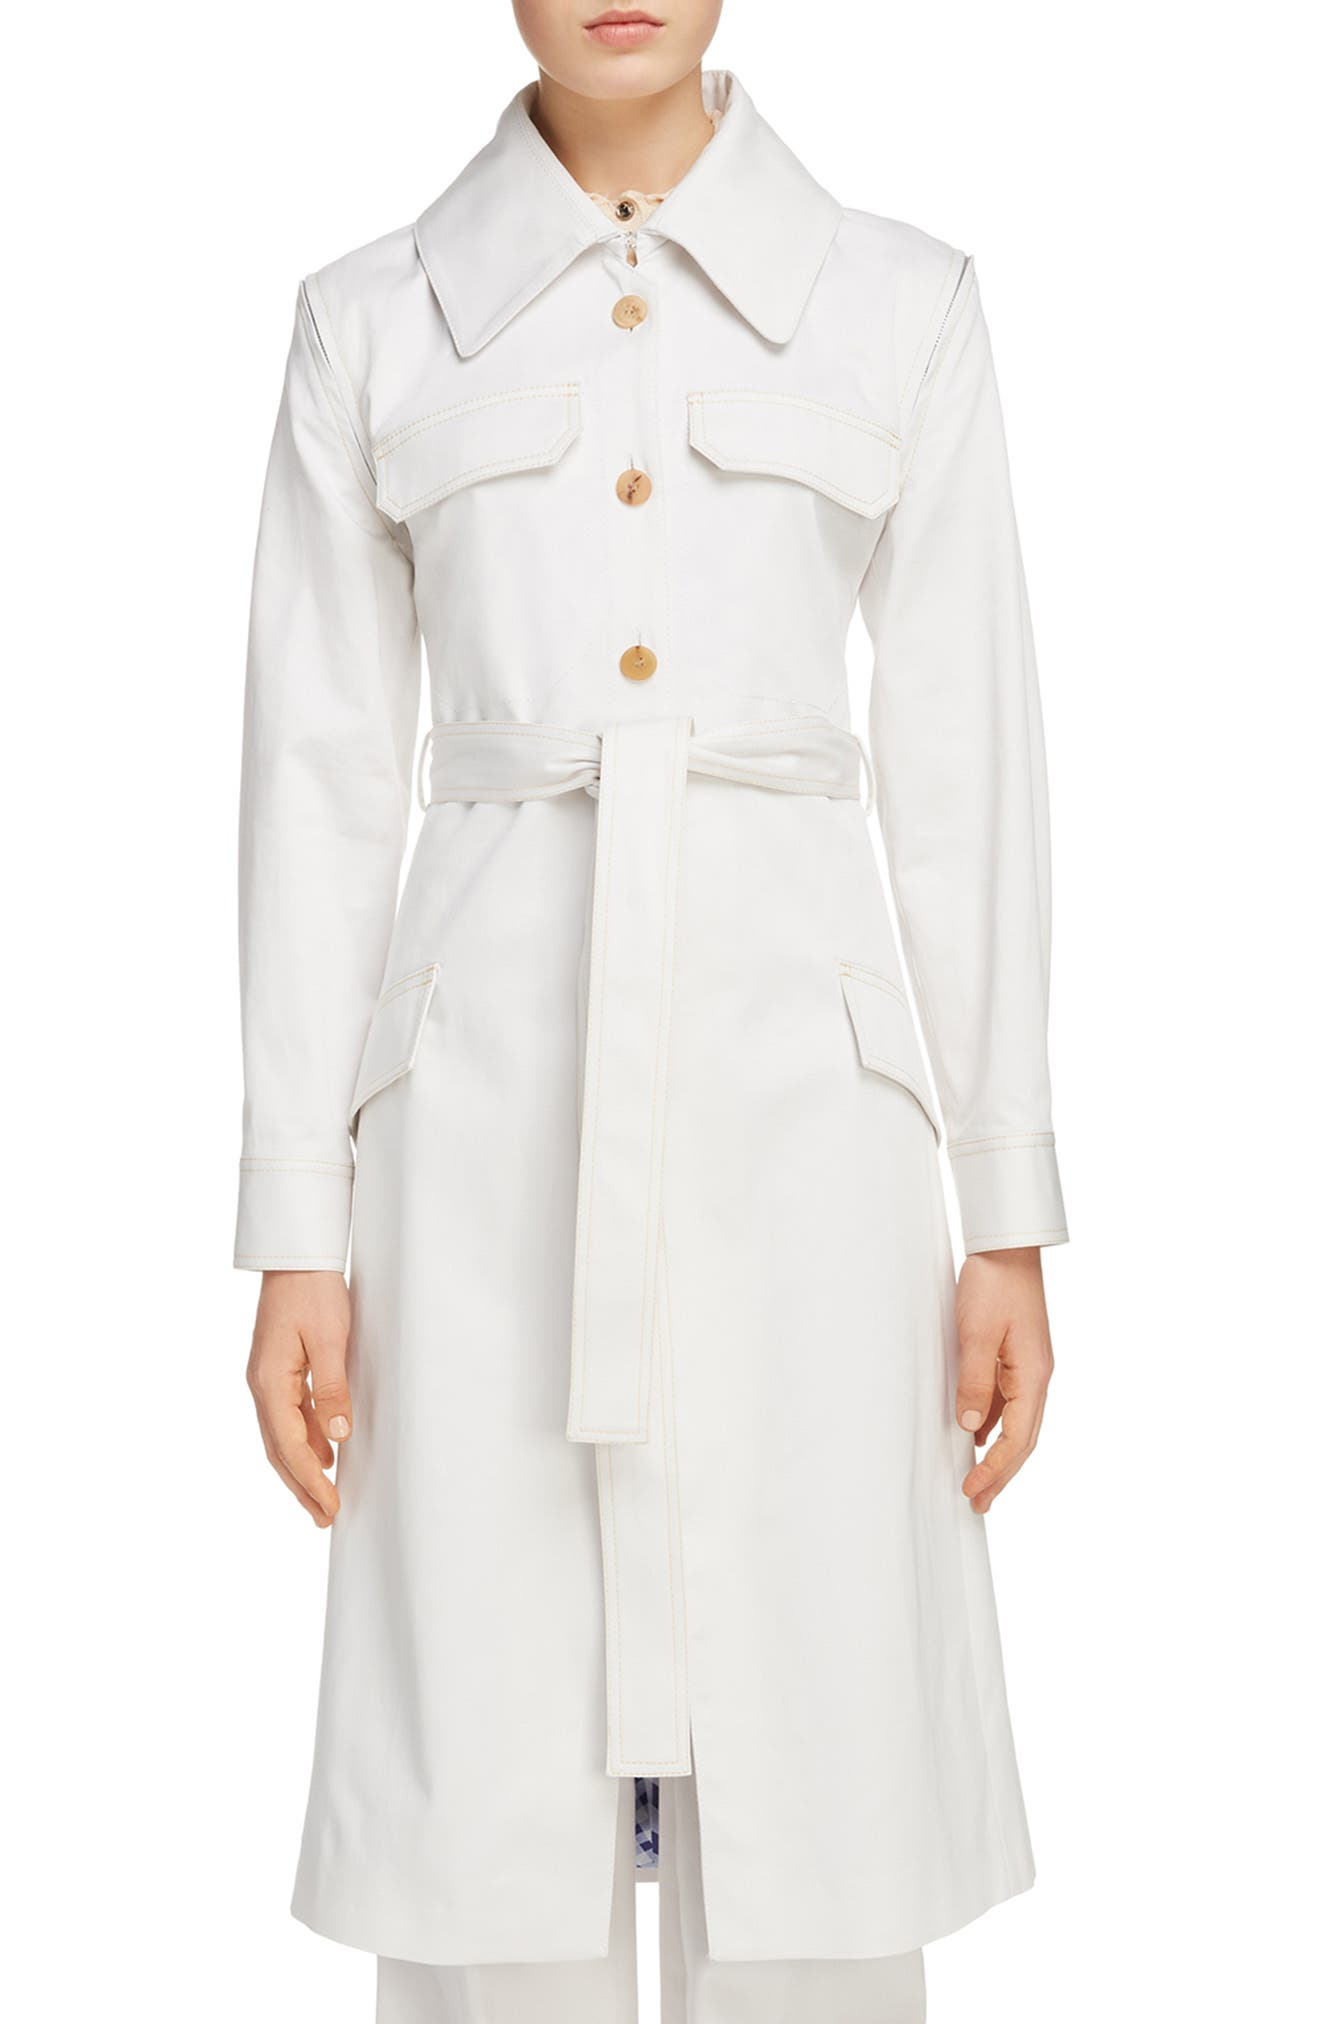 Olesia Removable Sleeve Belted Coat,                         Main,                         color, 900